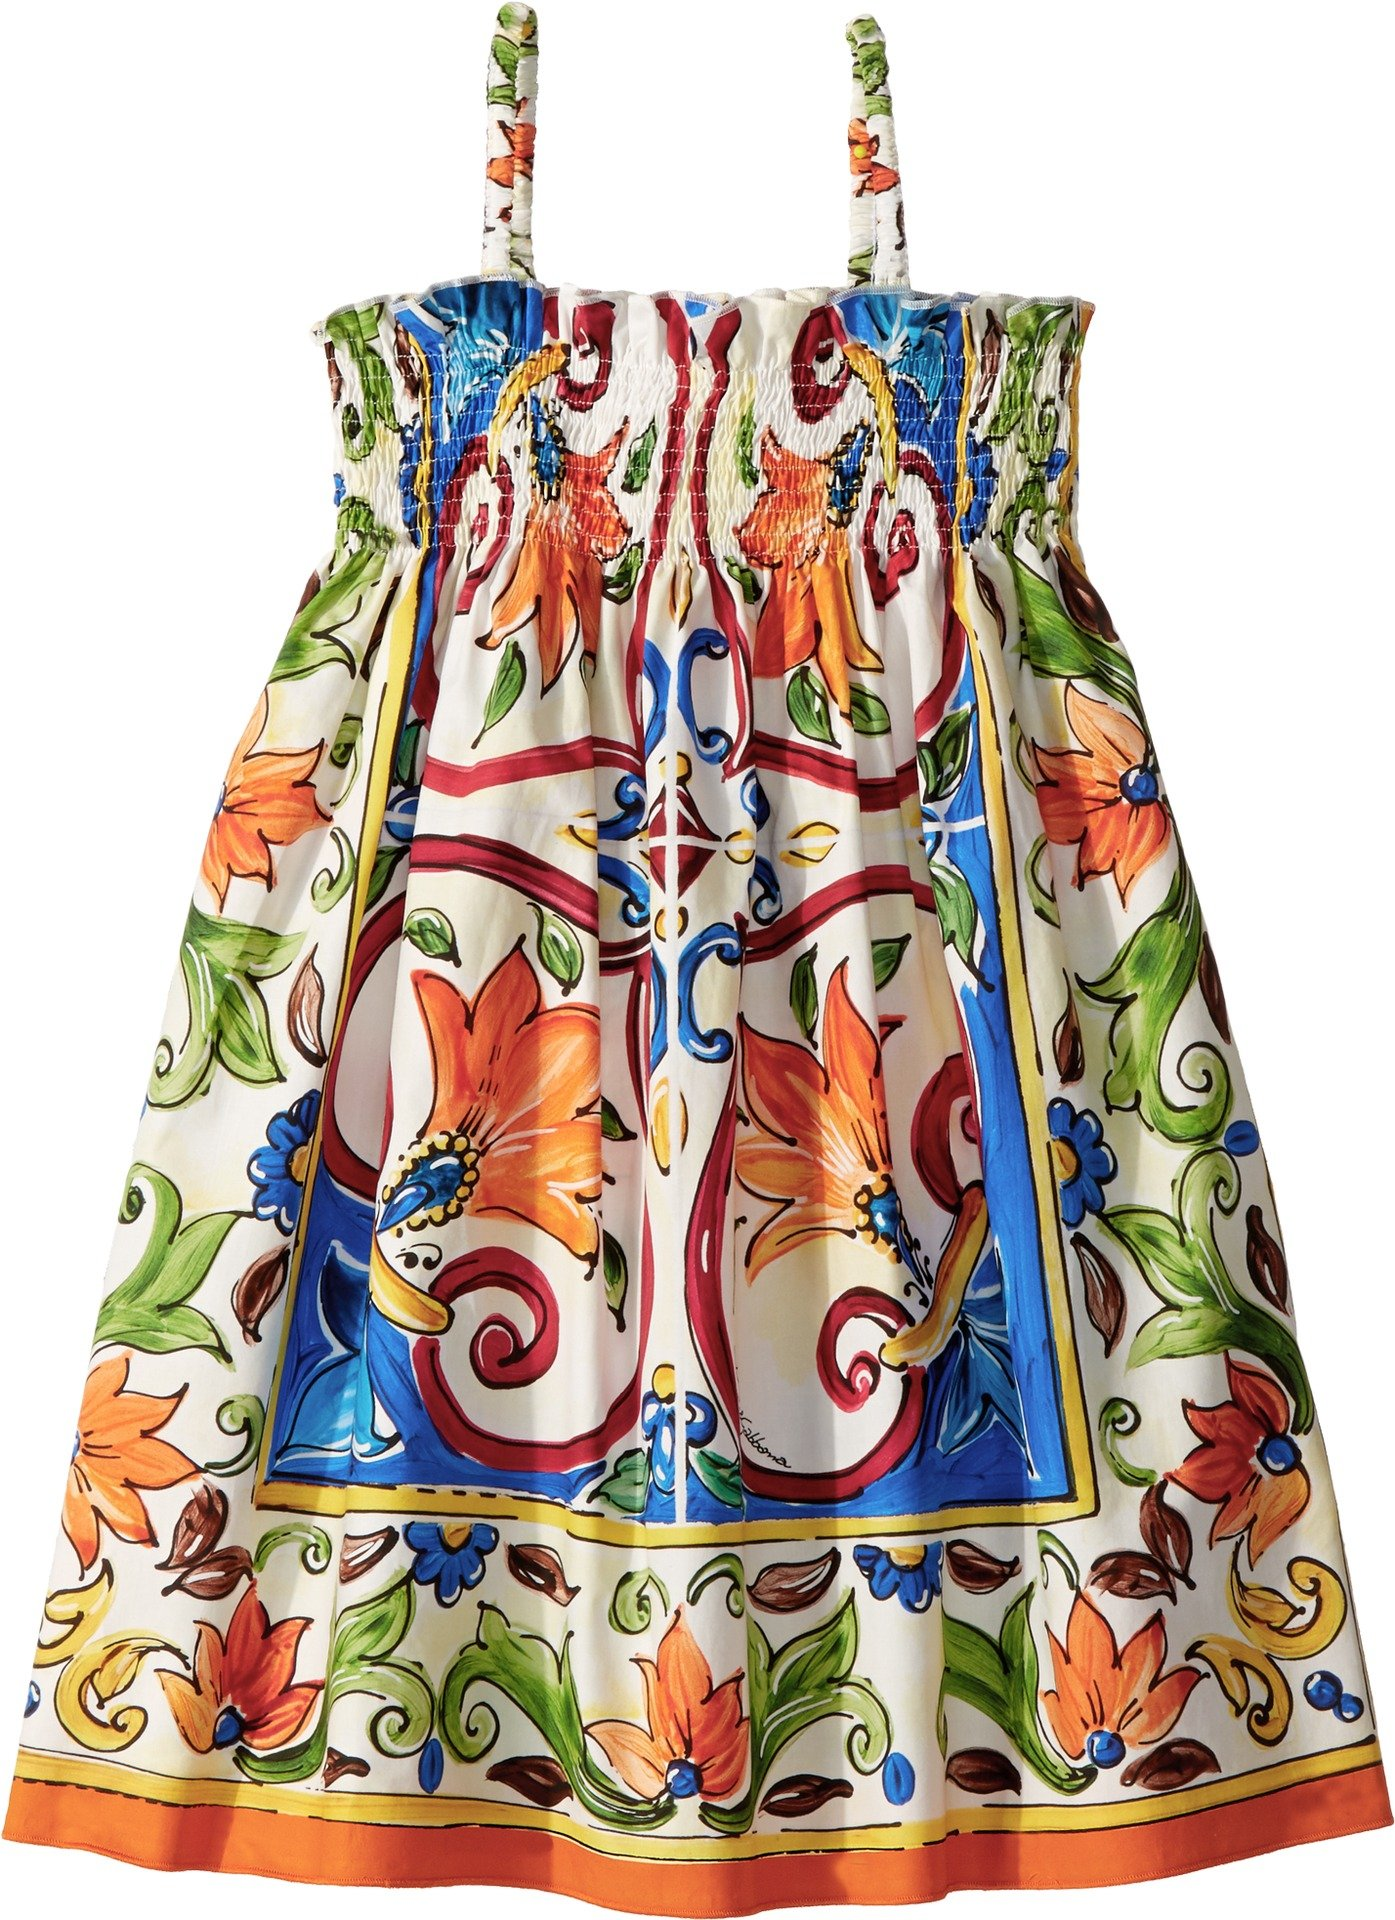 Dolce & Gabbana Kids Baby Girl's Sleeveless Dress (Toddler/Little Kids) Maiolica Print 5 by Dolce & Gabbana (Image #1)